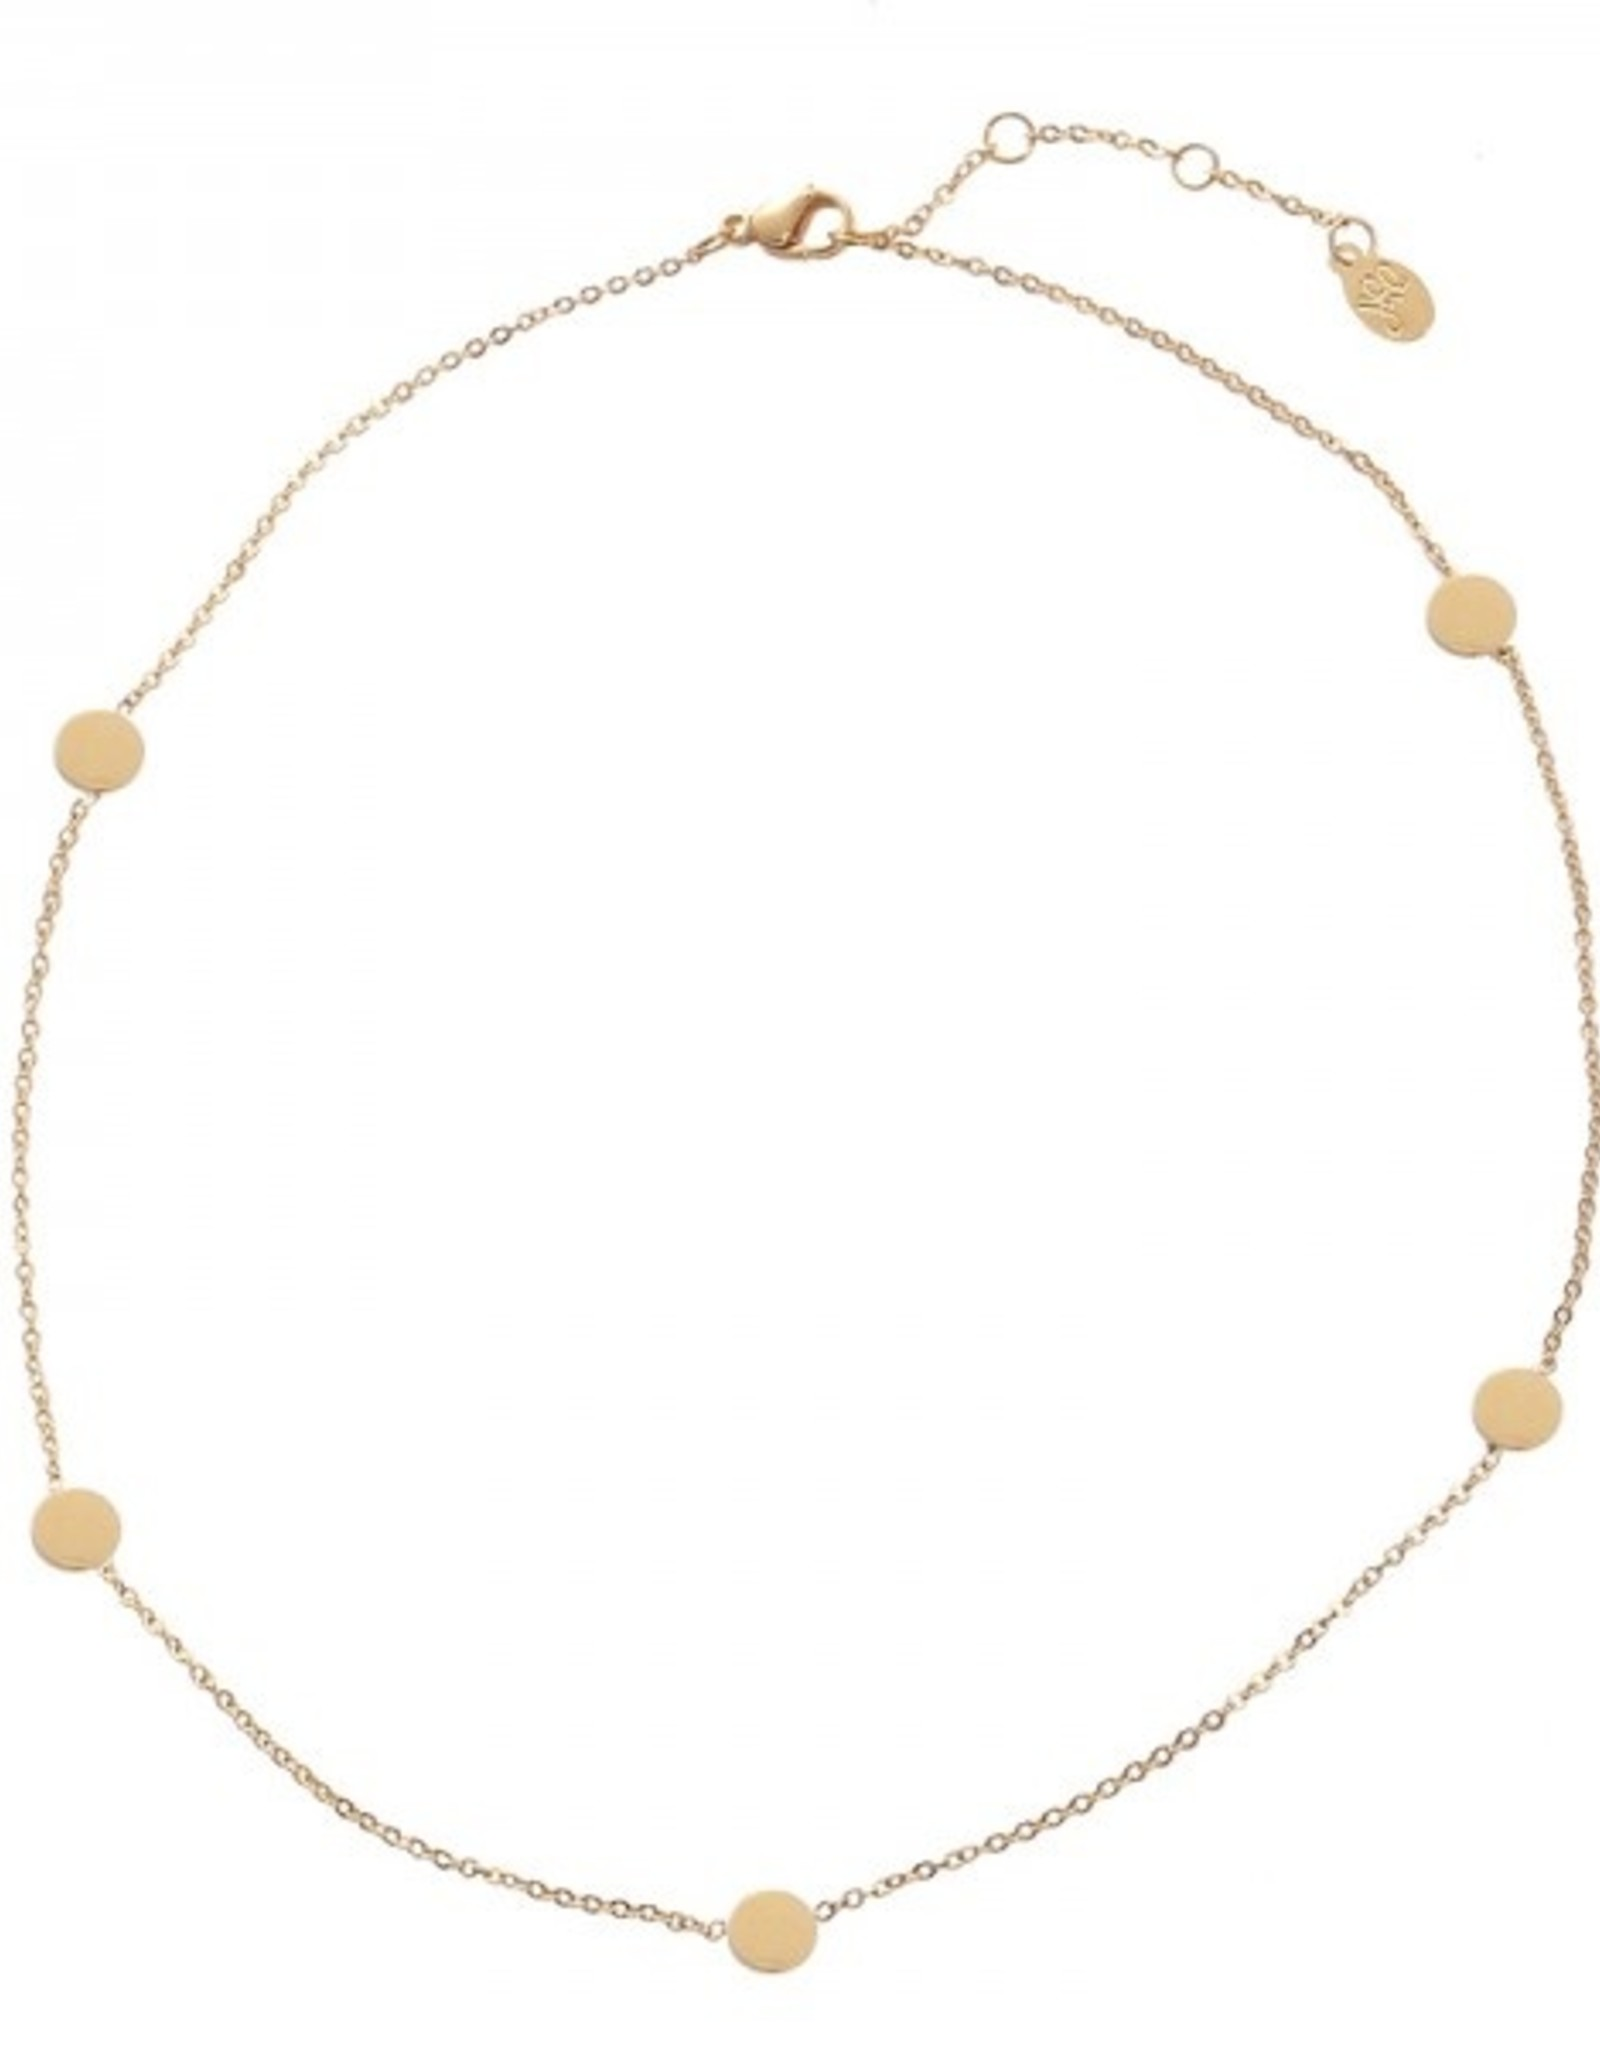 Make My Day Make My Day Necklace Gold Short